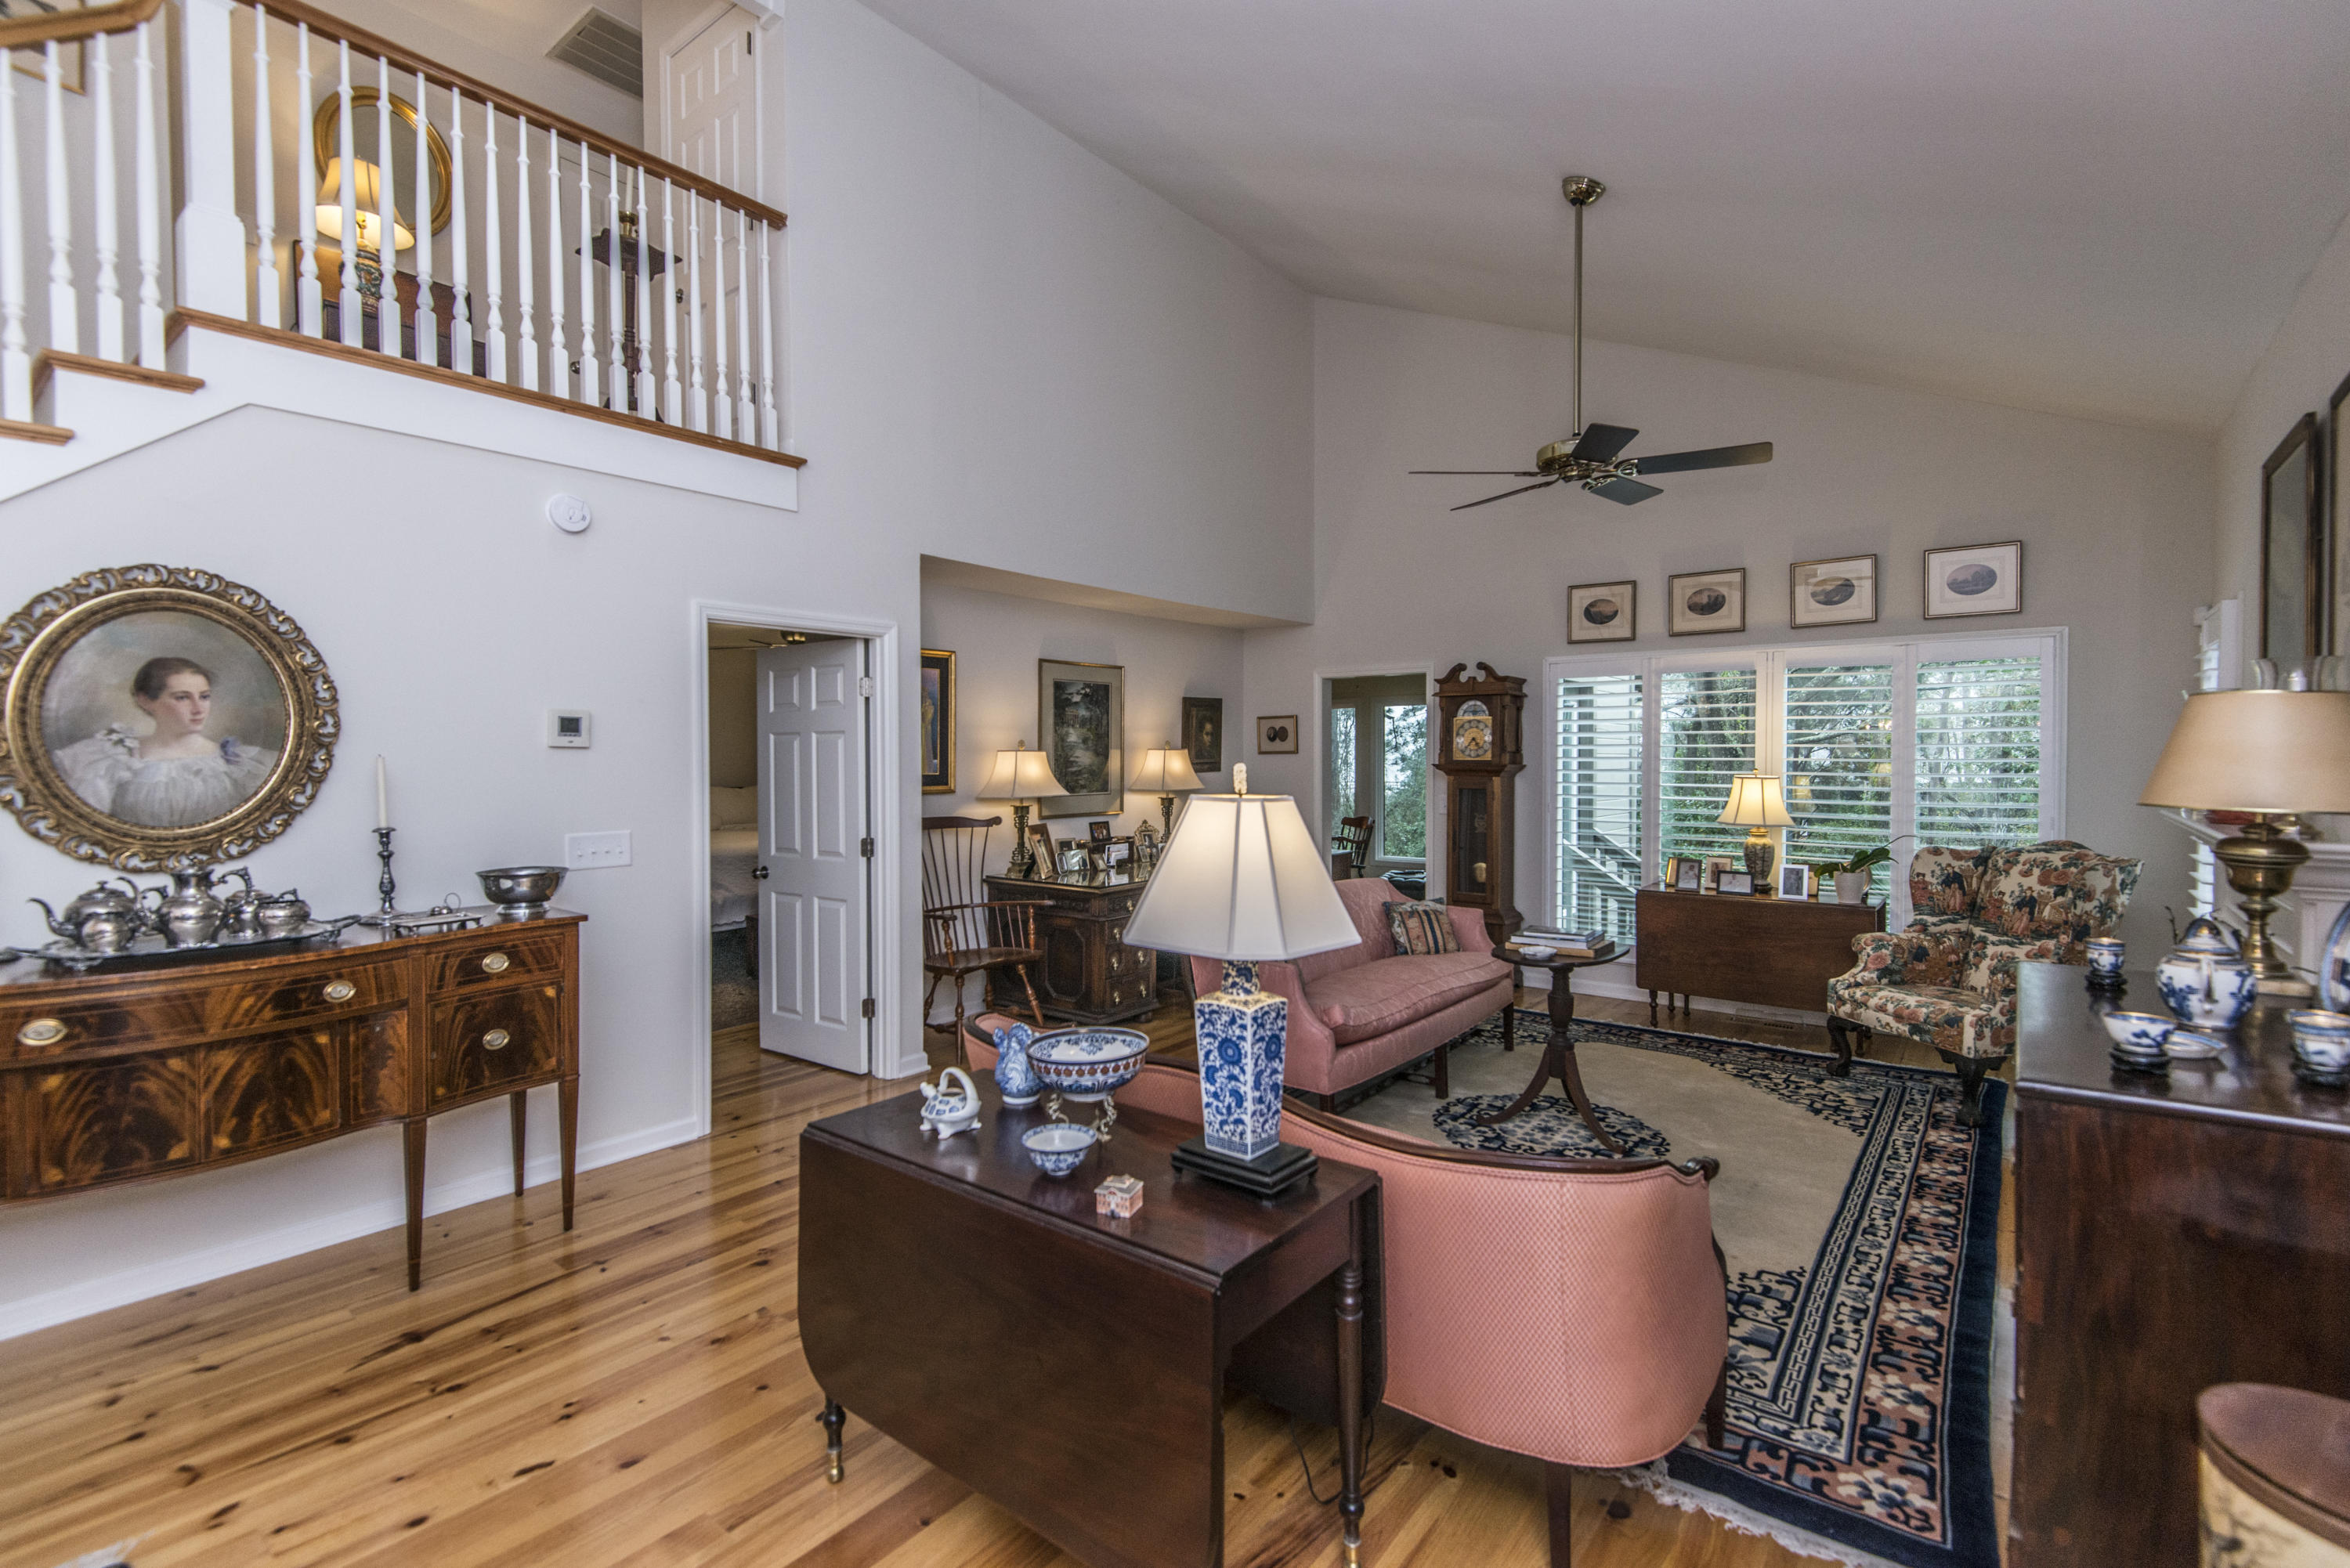 Wappoo Creek Place Homes For Sale - 26 Wappoo Creek Place, Charleston, SC - 30